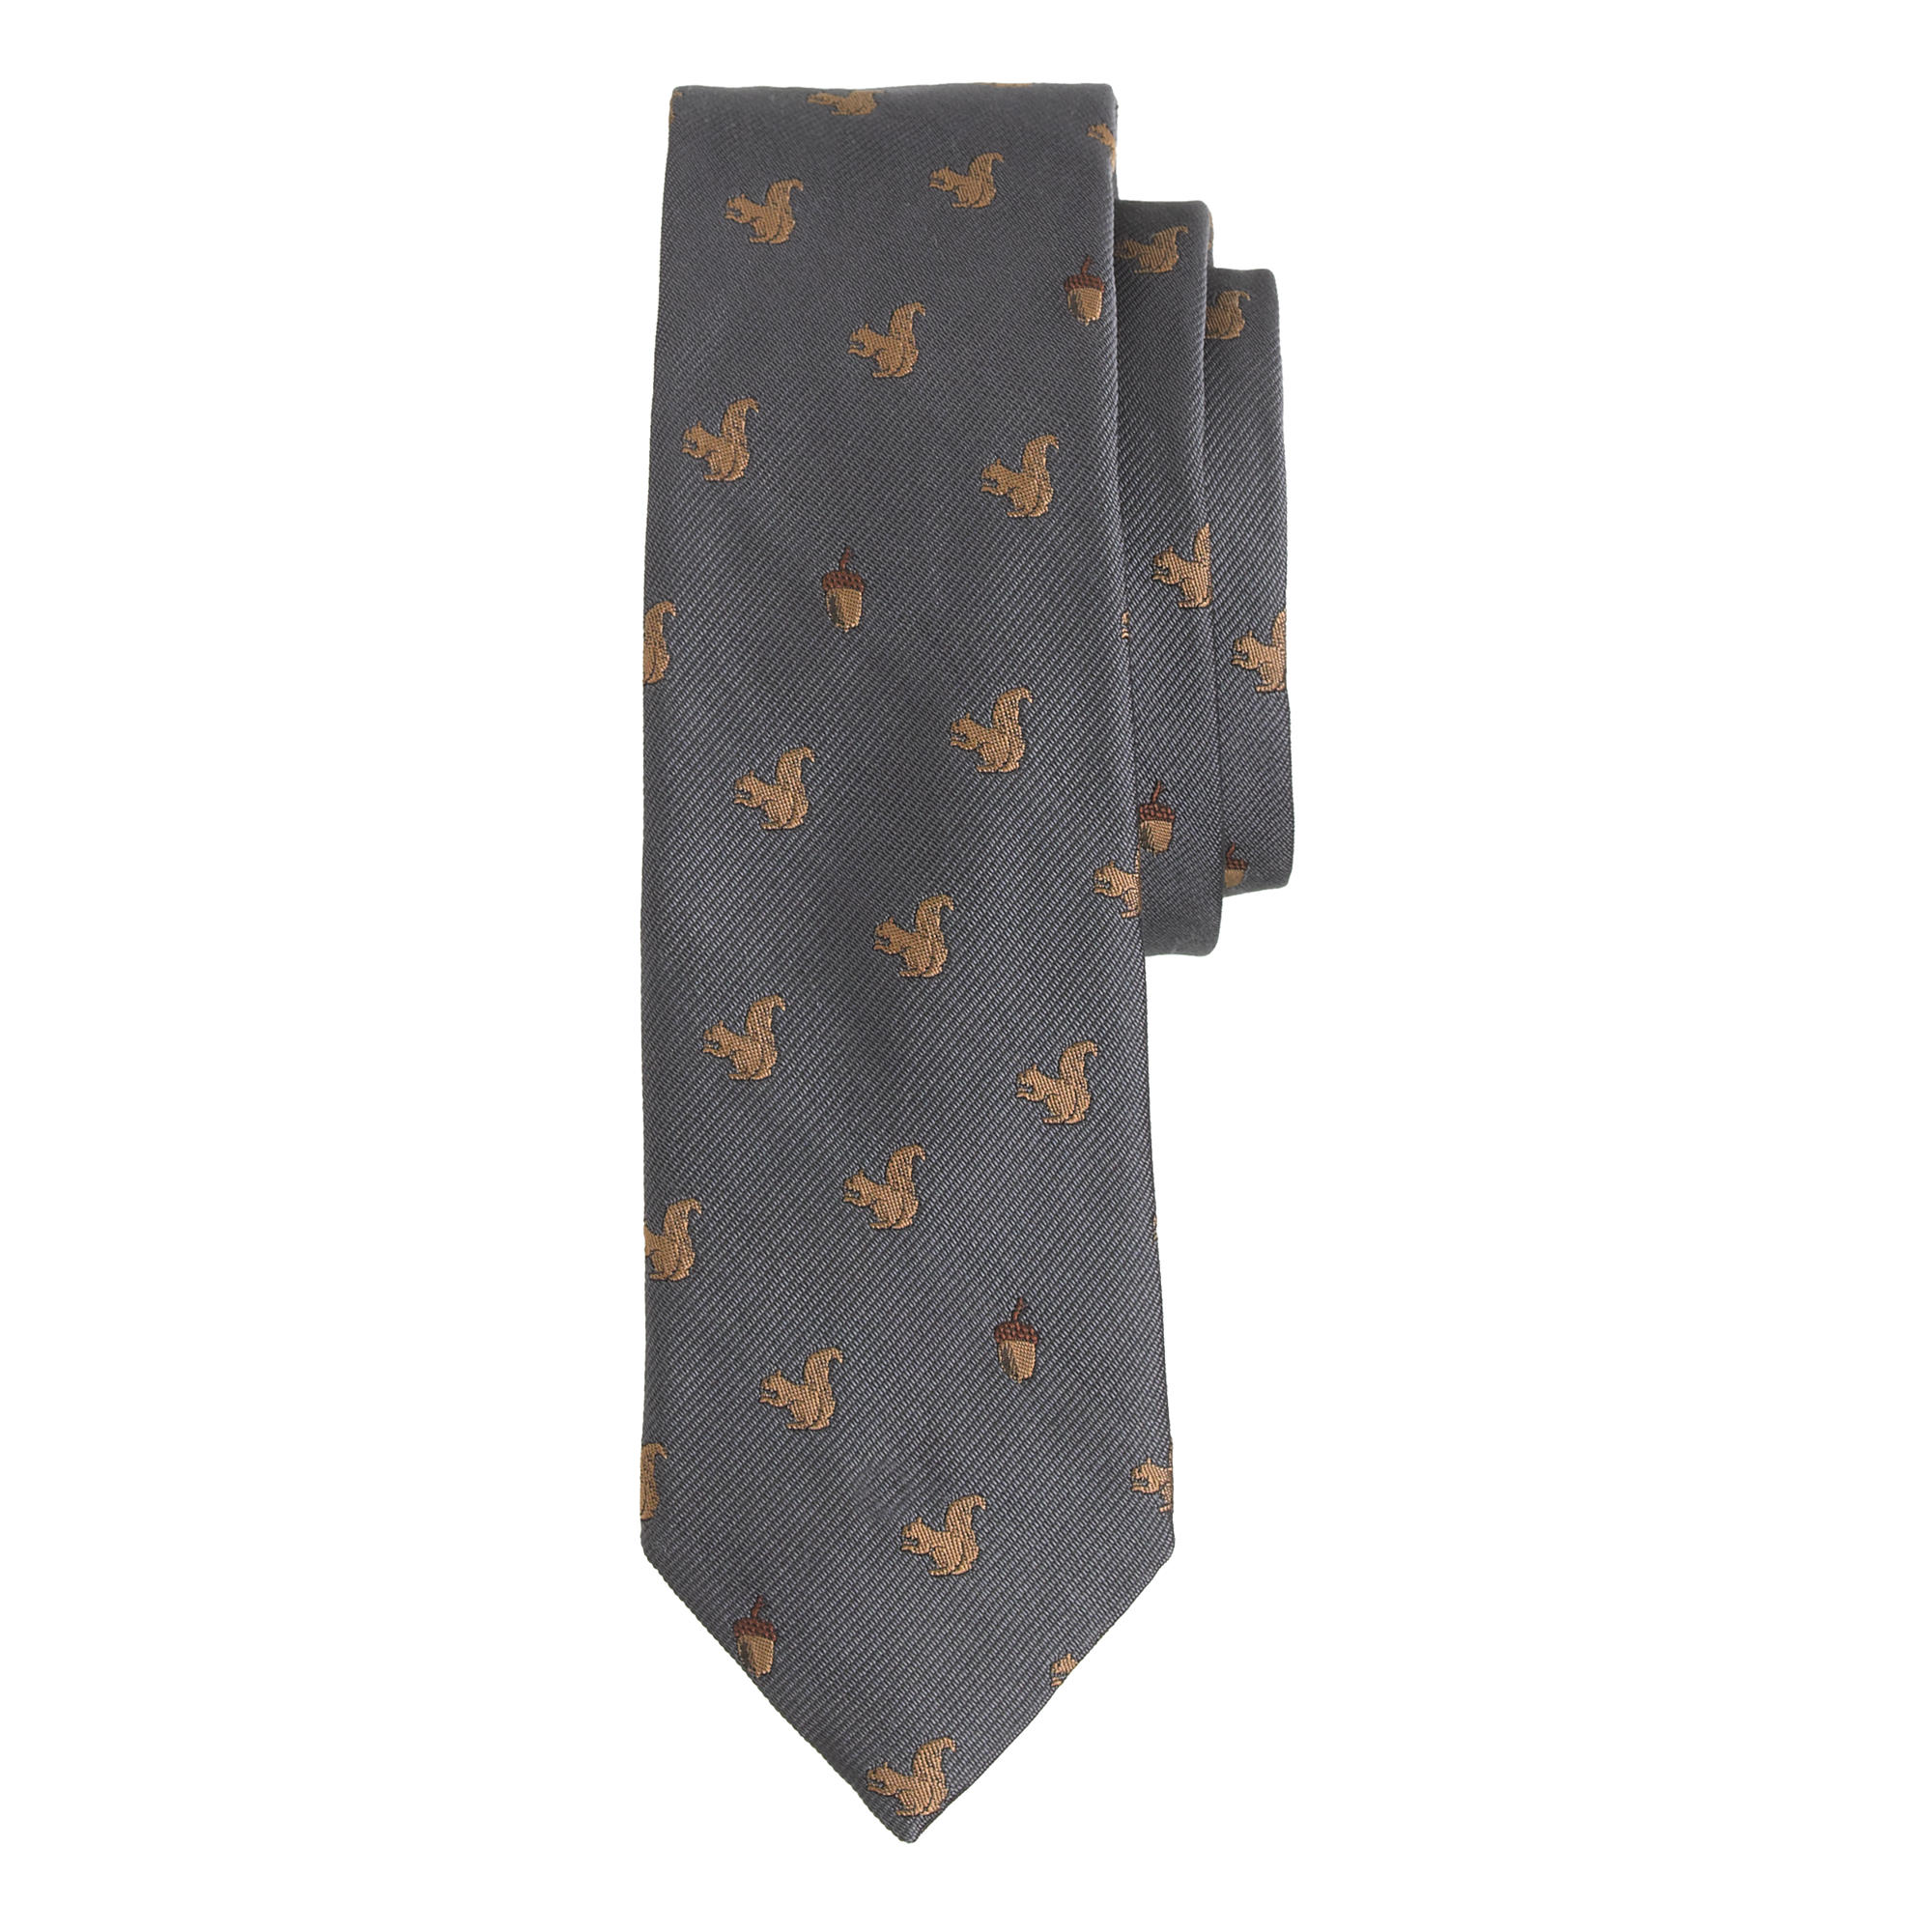 J.Crew English Silk Tie with Embroidered Squirrels | 10 Fall Wardrobe Essentials for Men